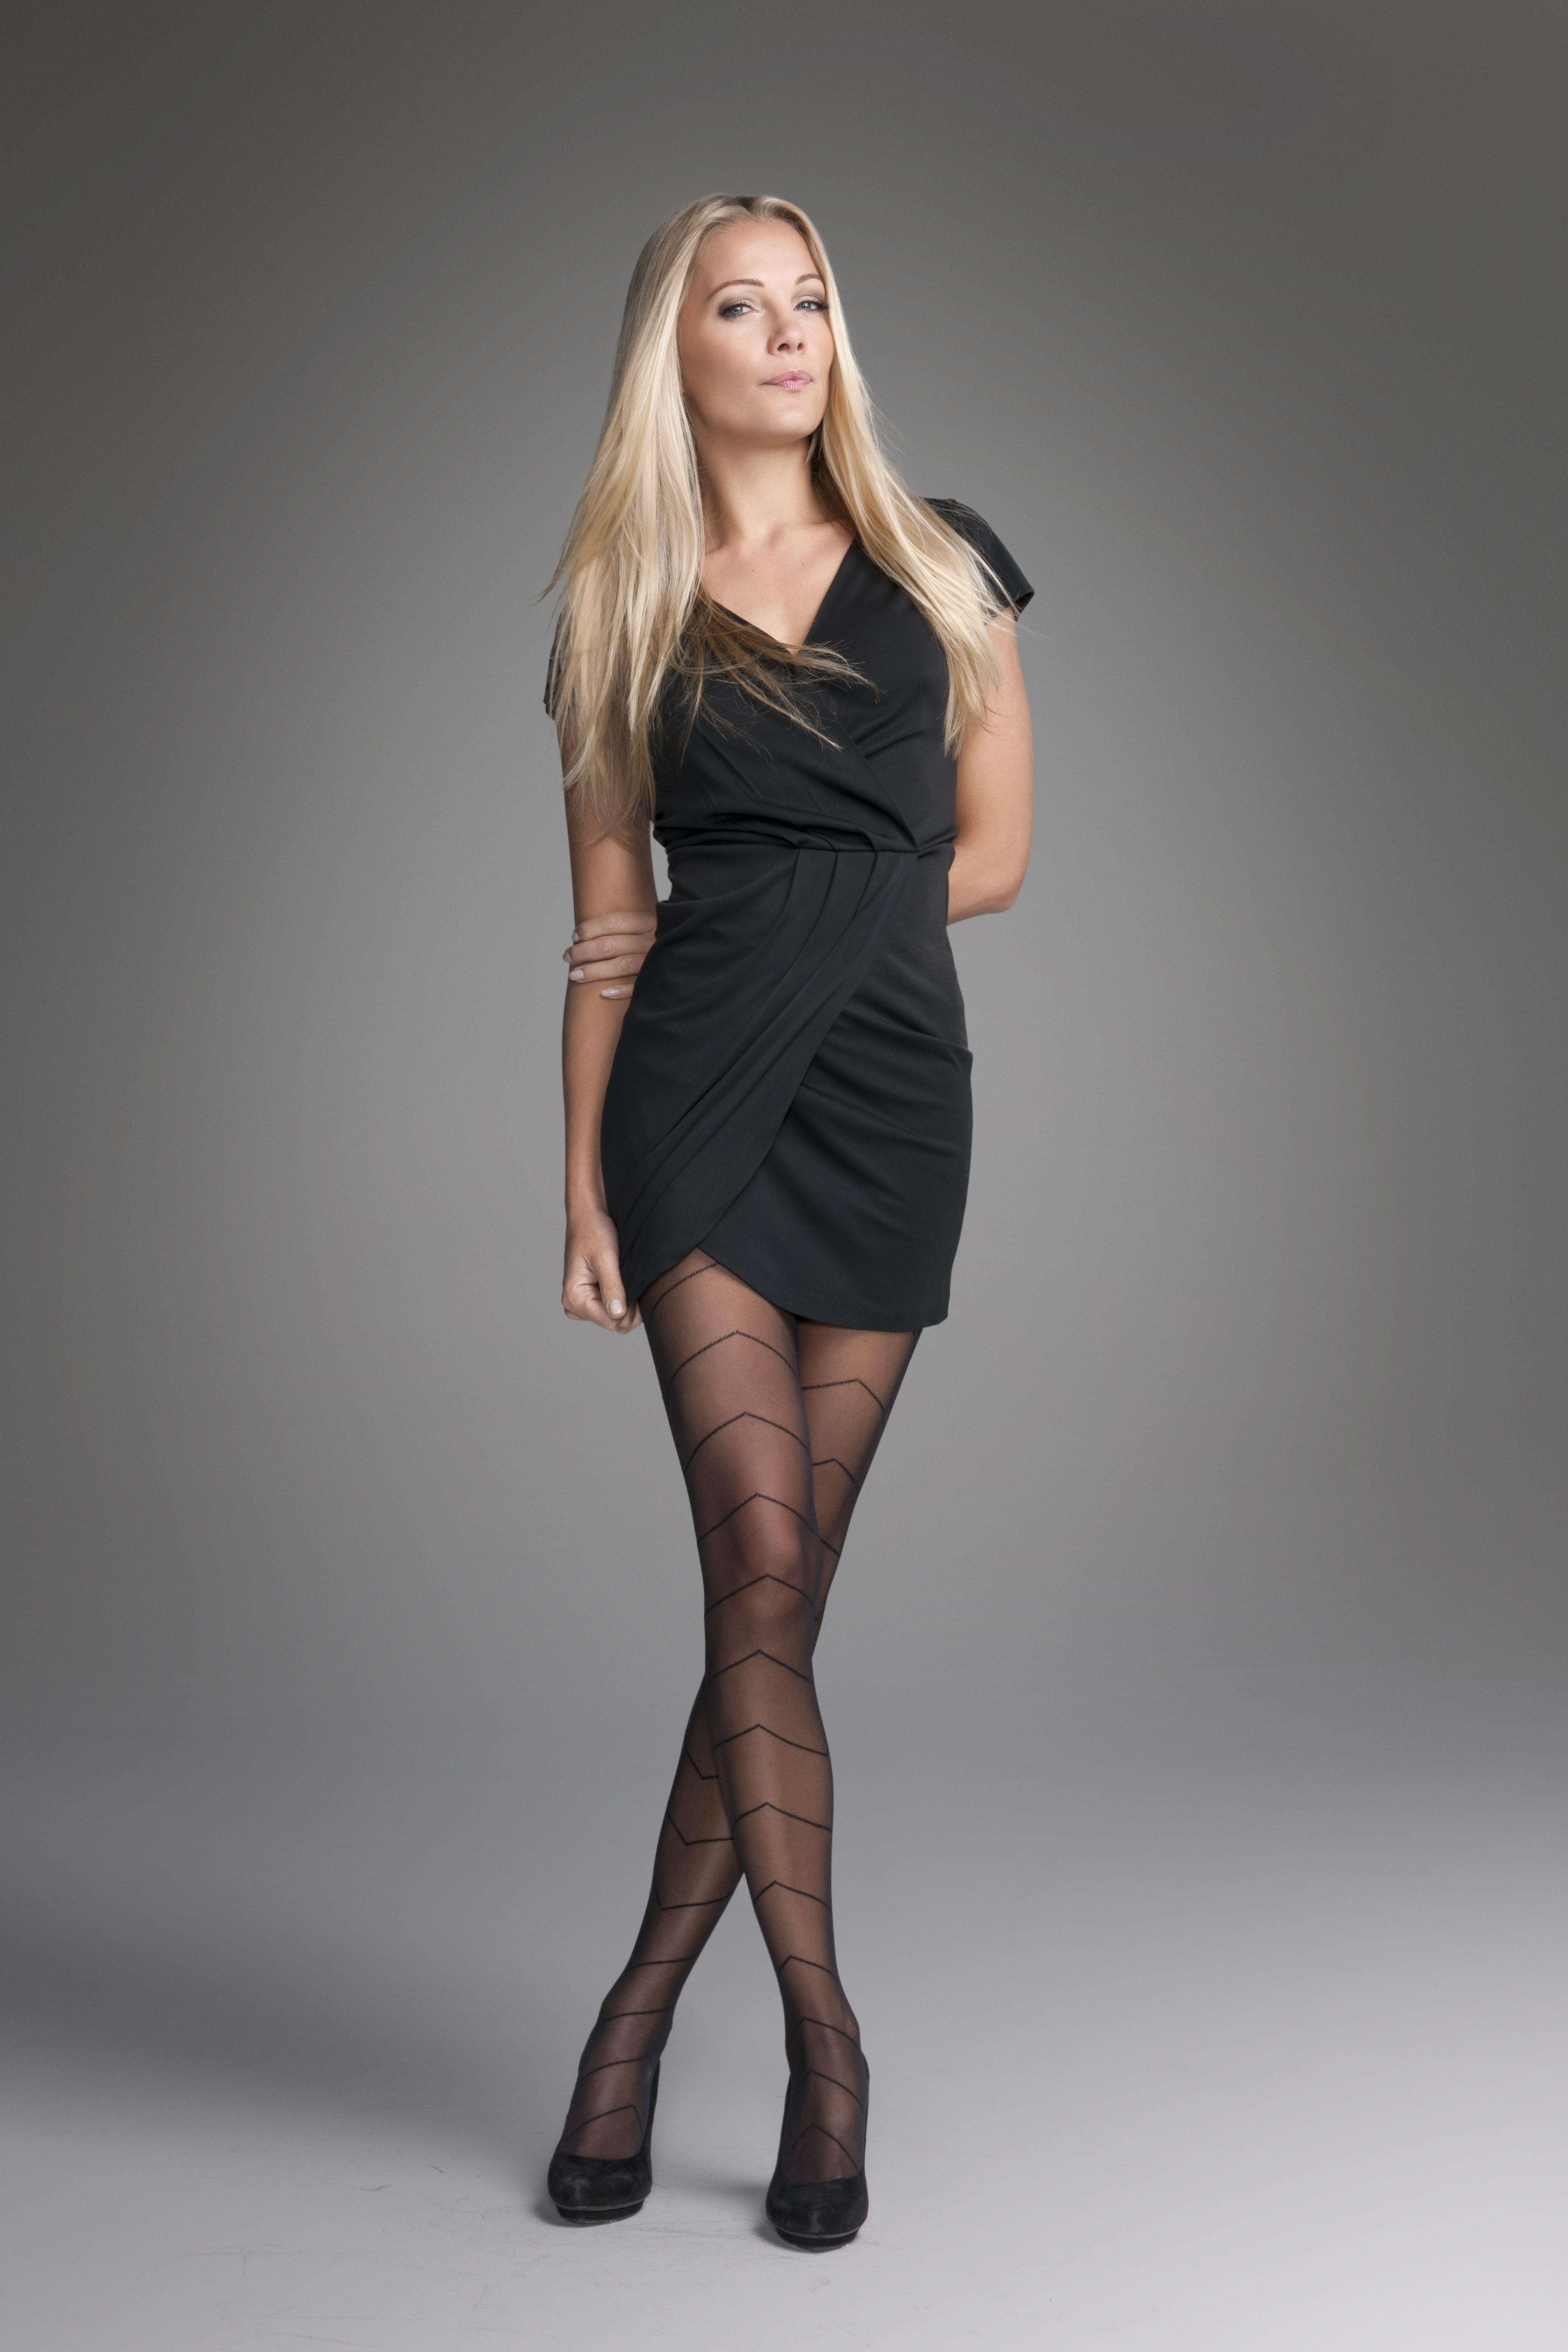 Caroline Flemming Pantyhose About Hosiery In 2018 Pinterest Jolie Clothing Donita Jumpsuit Navy L Fashion Forward Pretty Dresses Sexy Cool Tights Beautiful